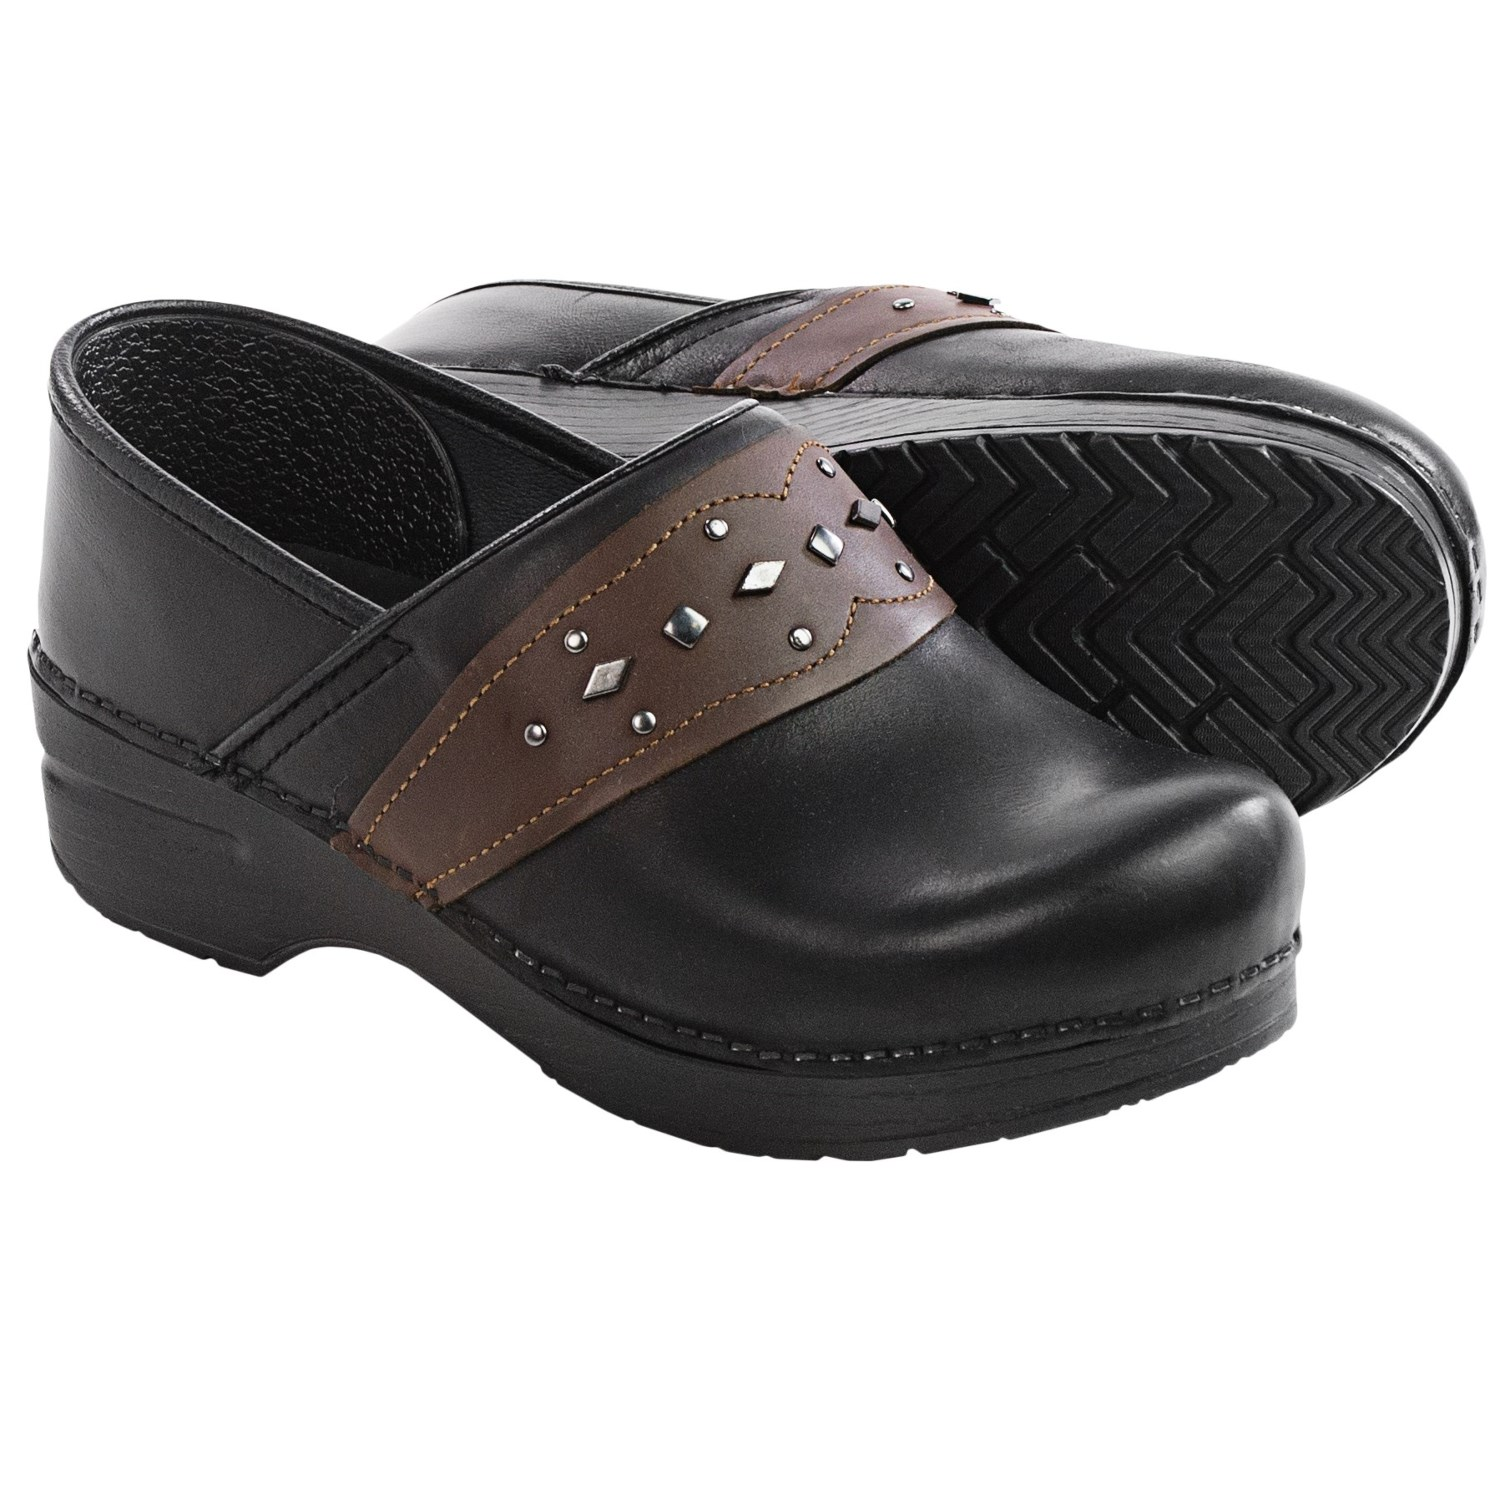 Discover the latest styles of women's clogs and slip on shoes from your favorite brands at Famous Footwear! Find your fit today!